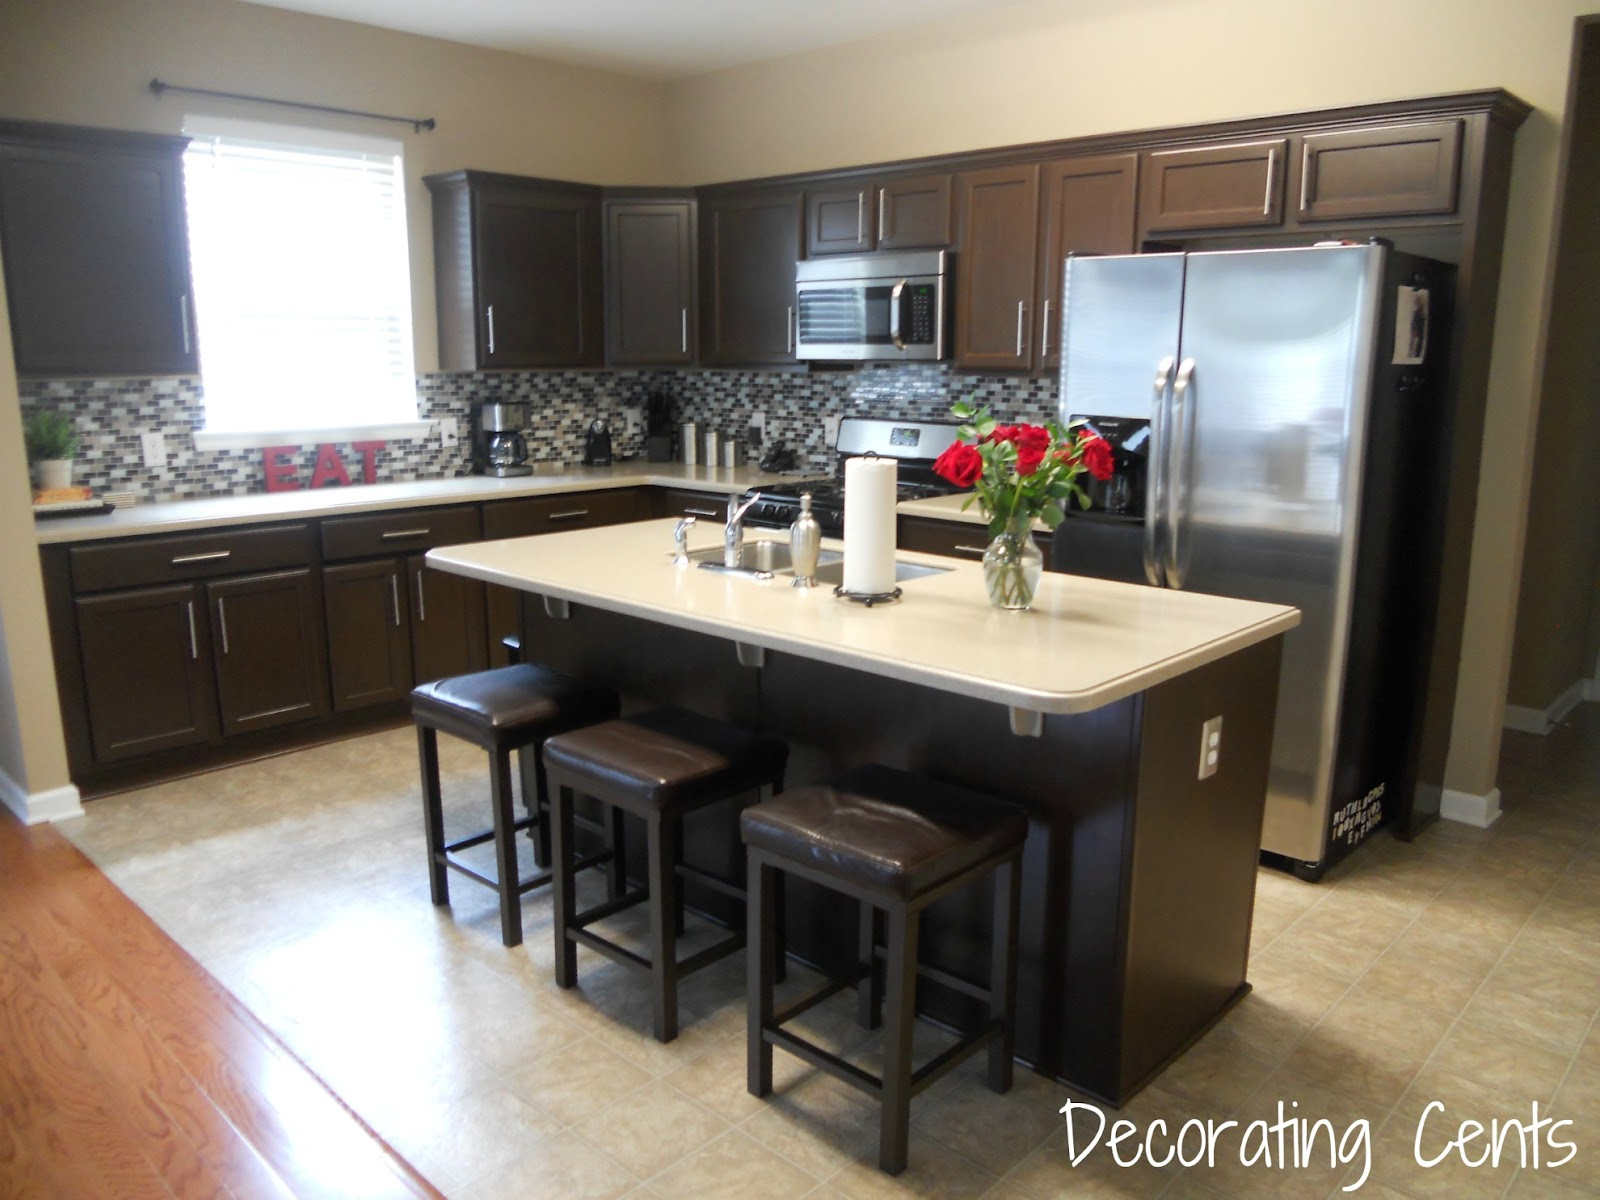 Decorating cents kitchen cabinets revealed for Pictures of new kitchens